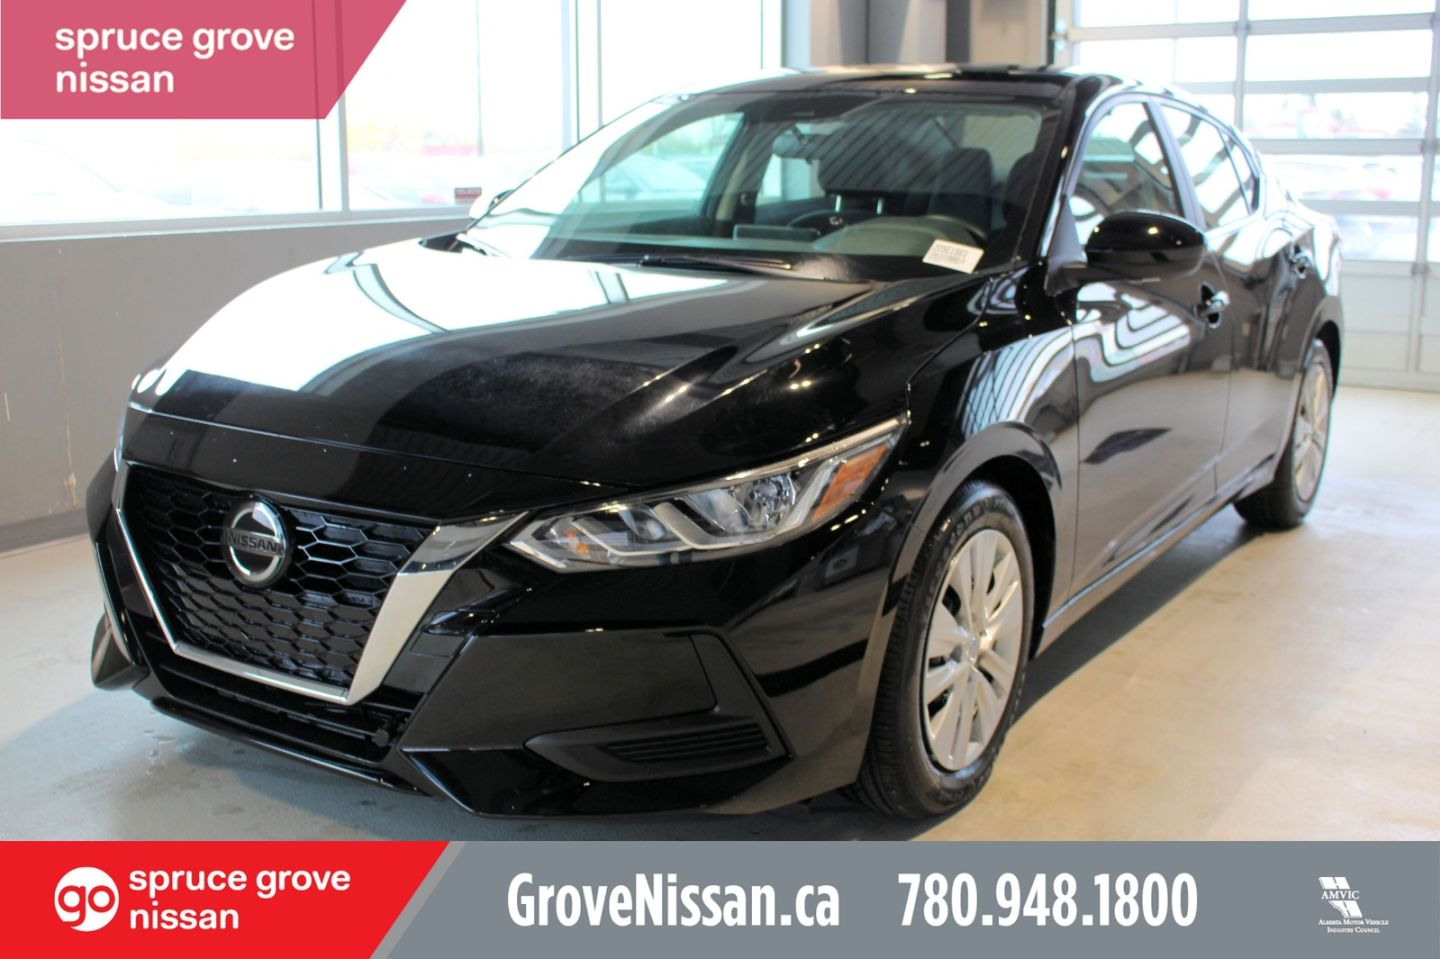 2020 Nissan Sentra S Plus for sale in Spruce Grove, Alberta